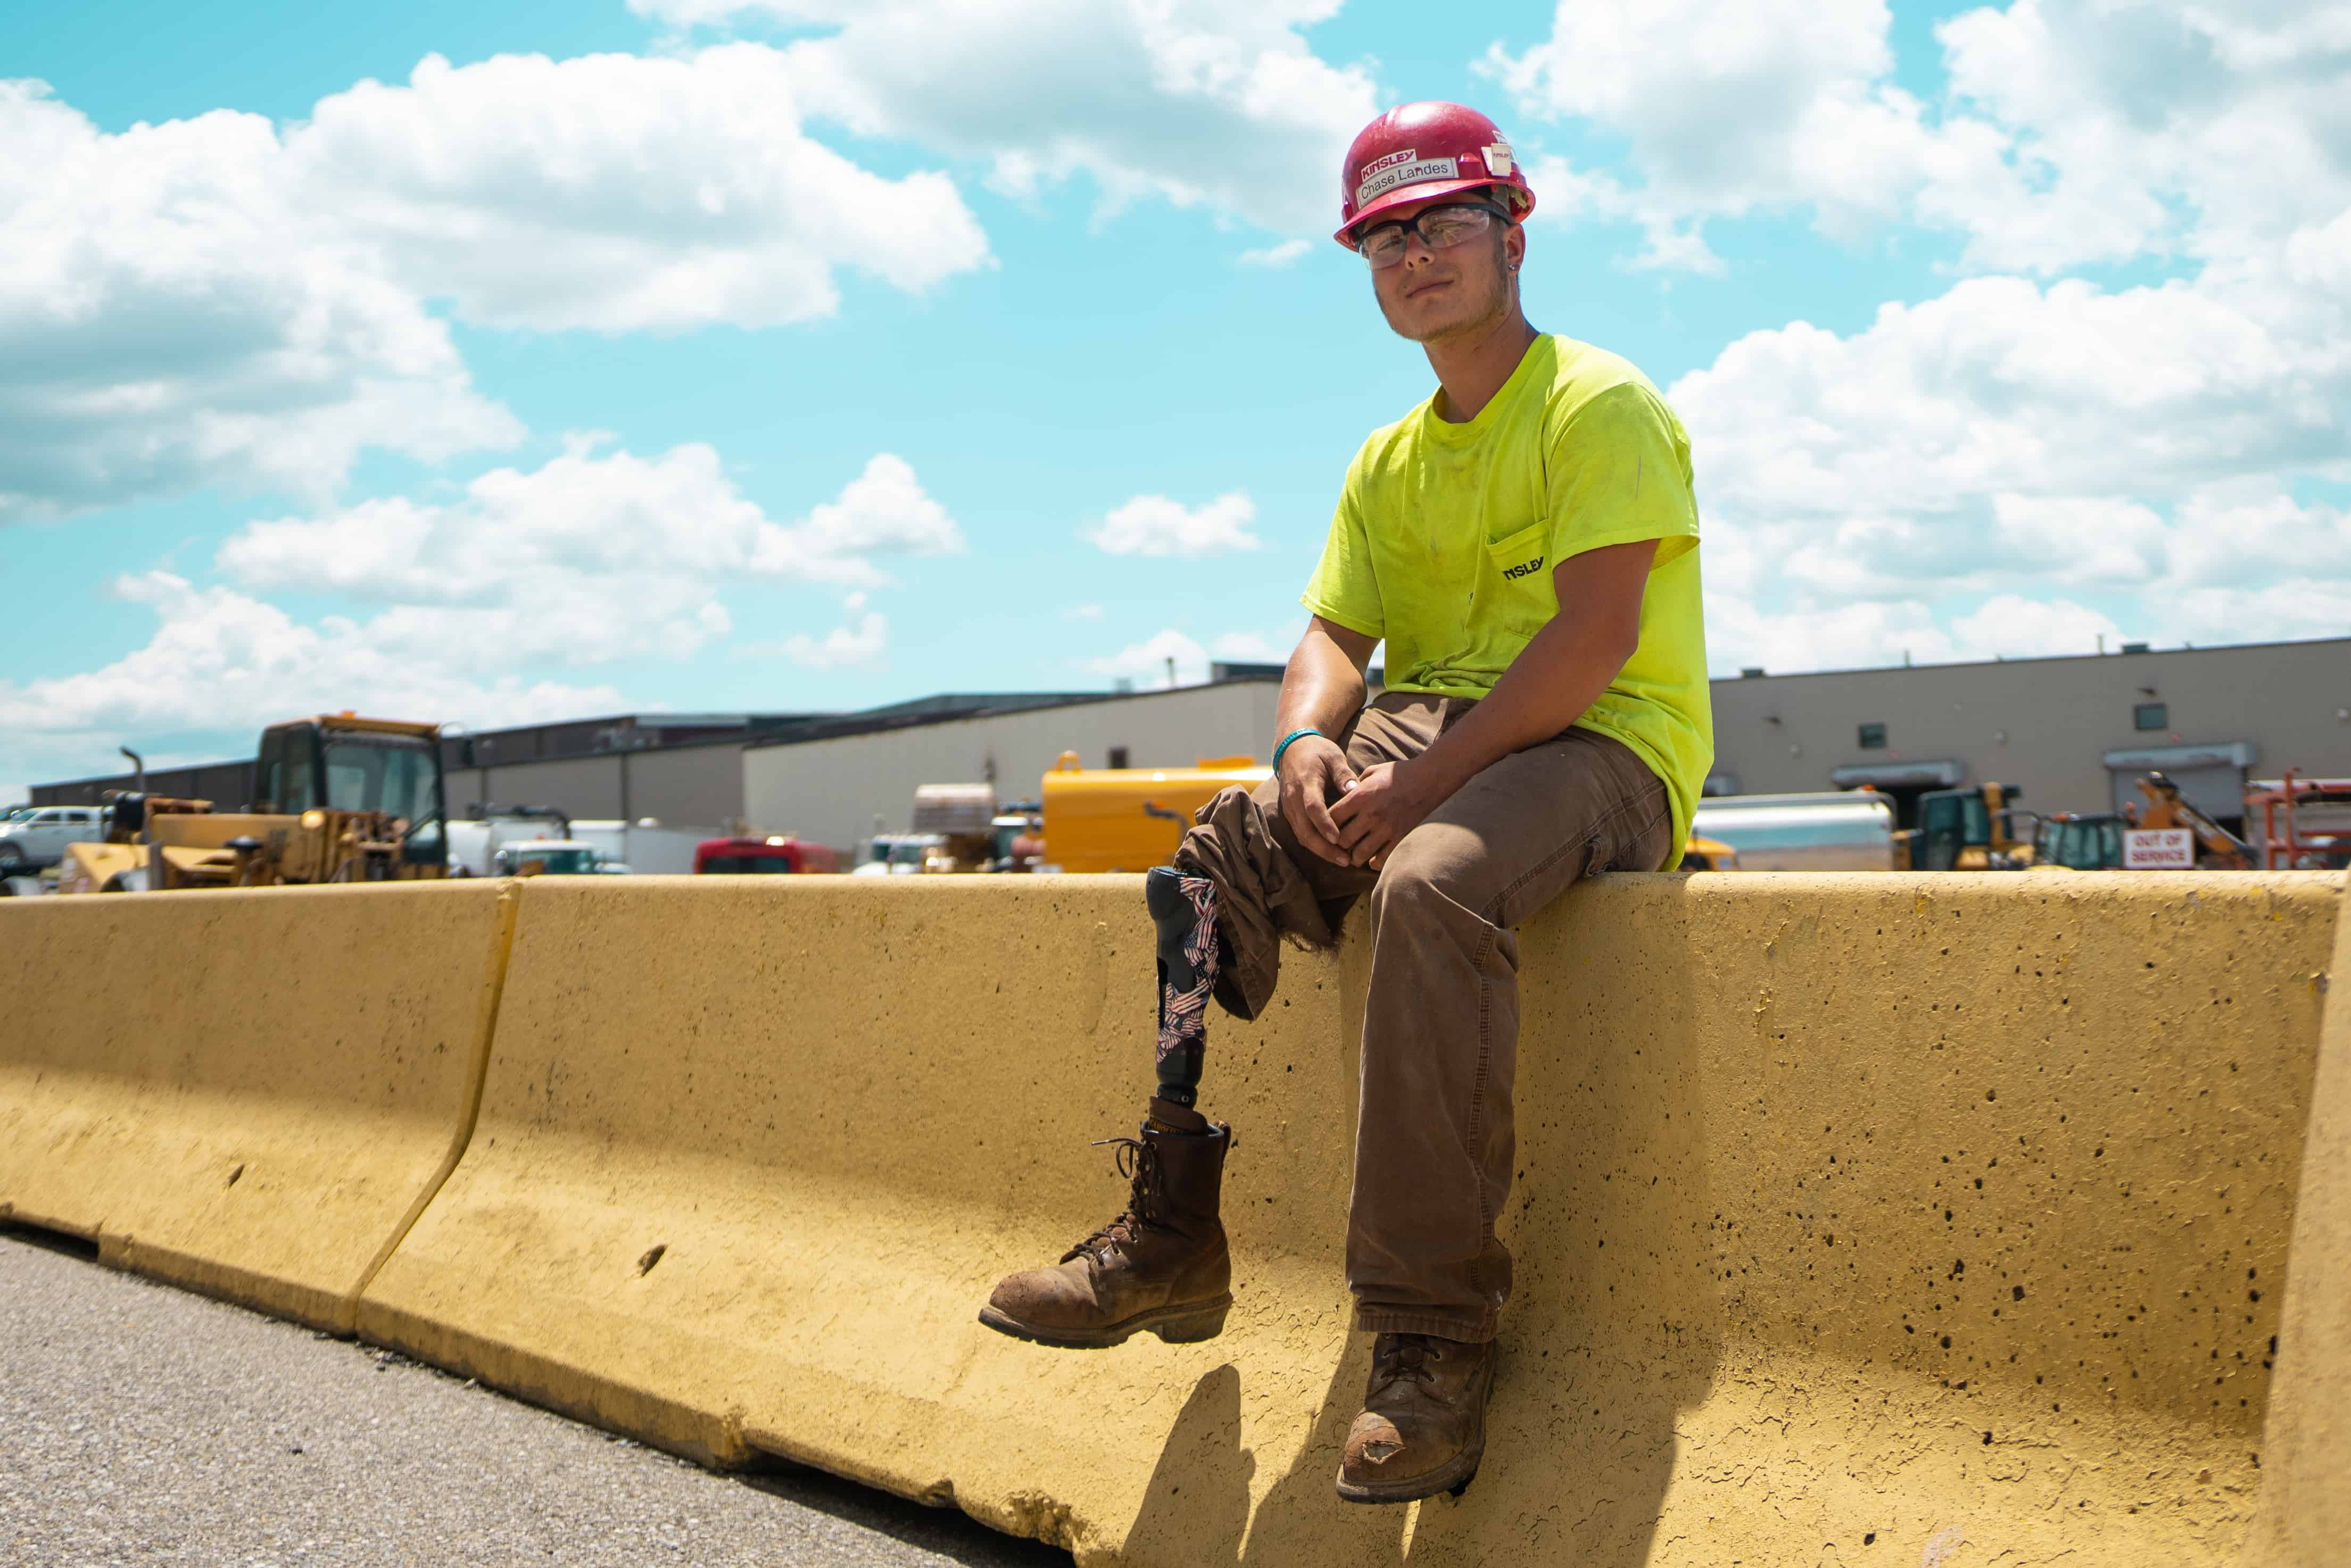 Motorcycle crash doesn't end career of Kinsley Construction